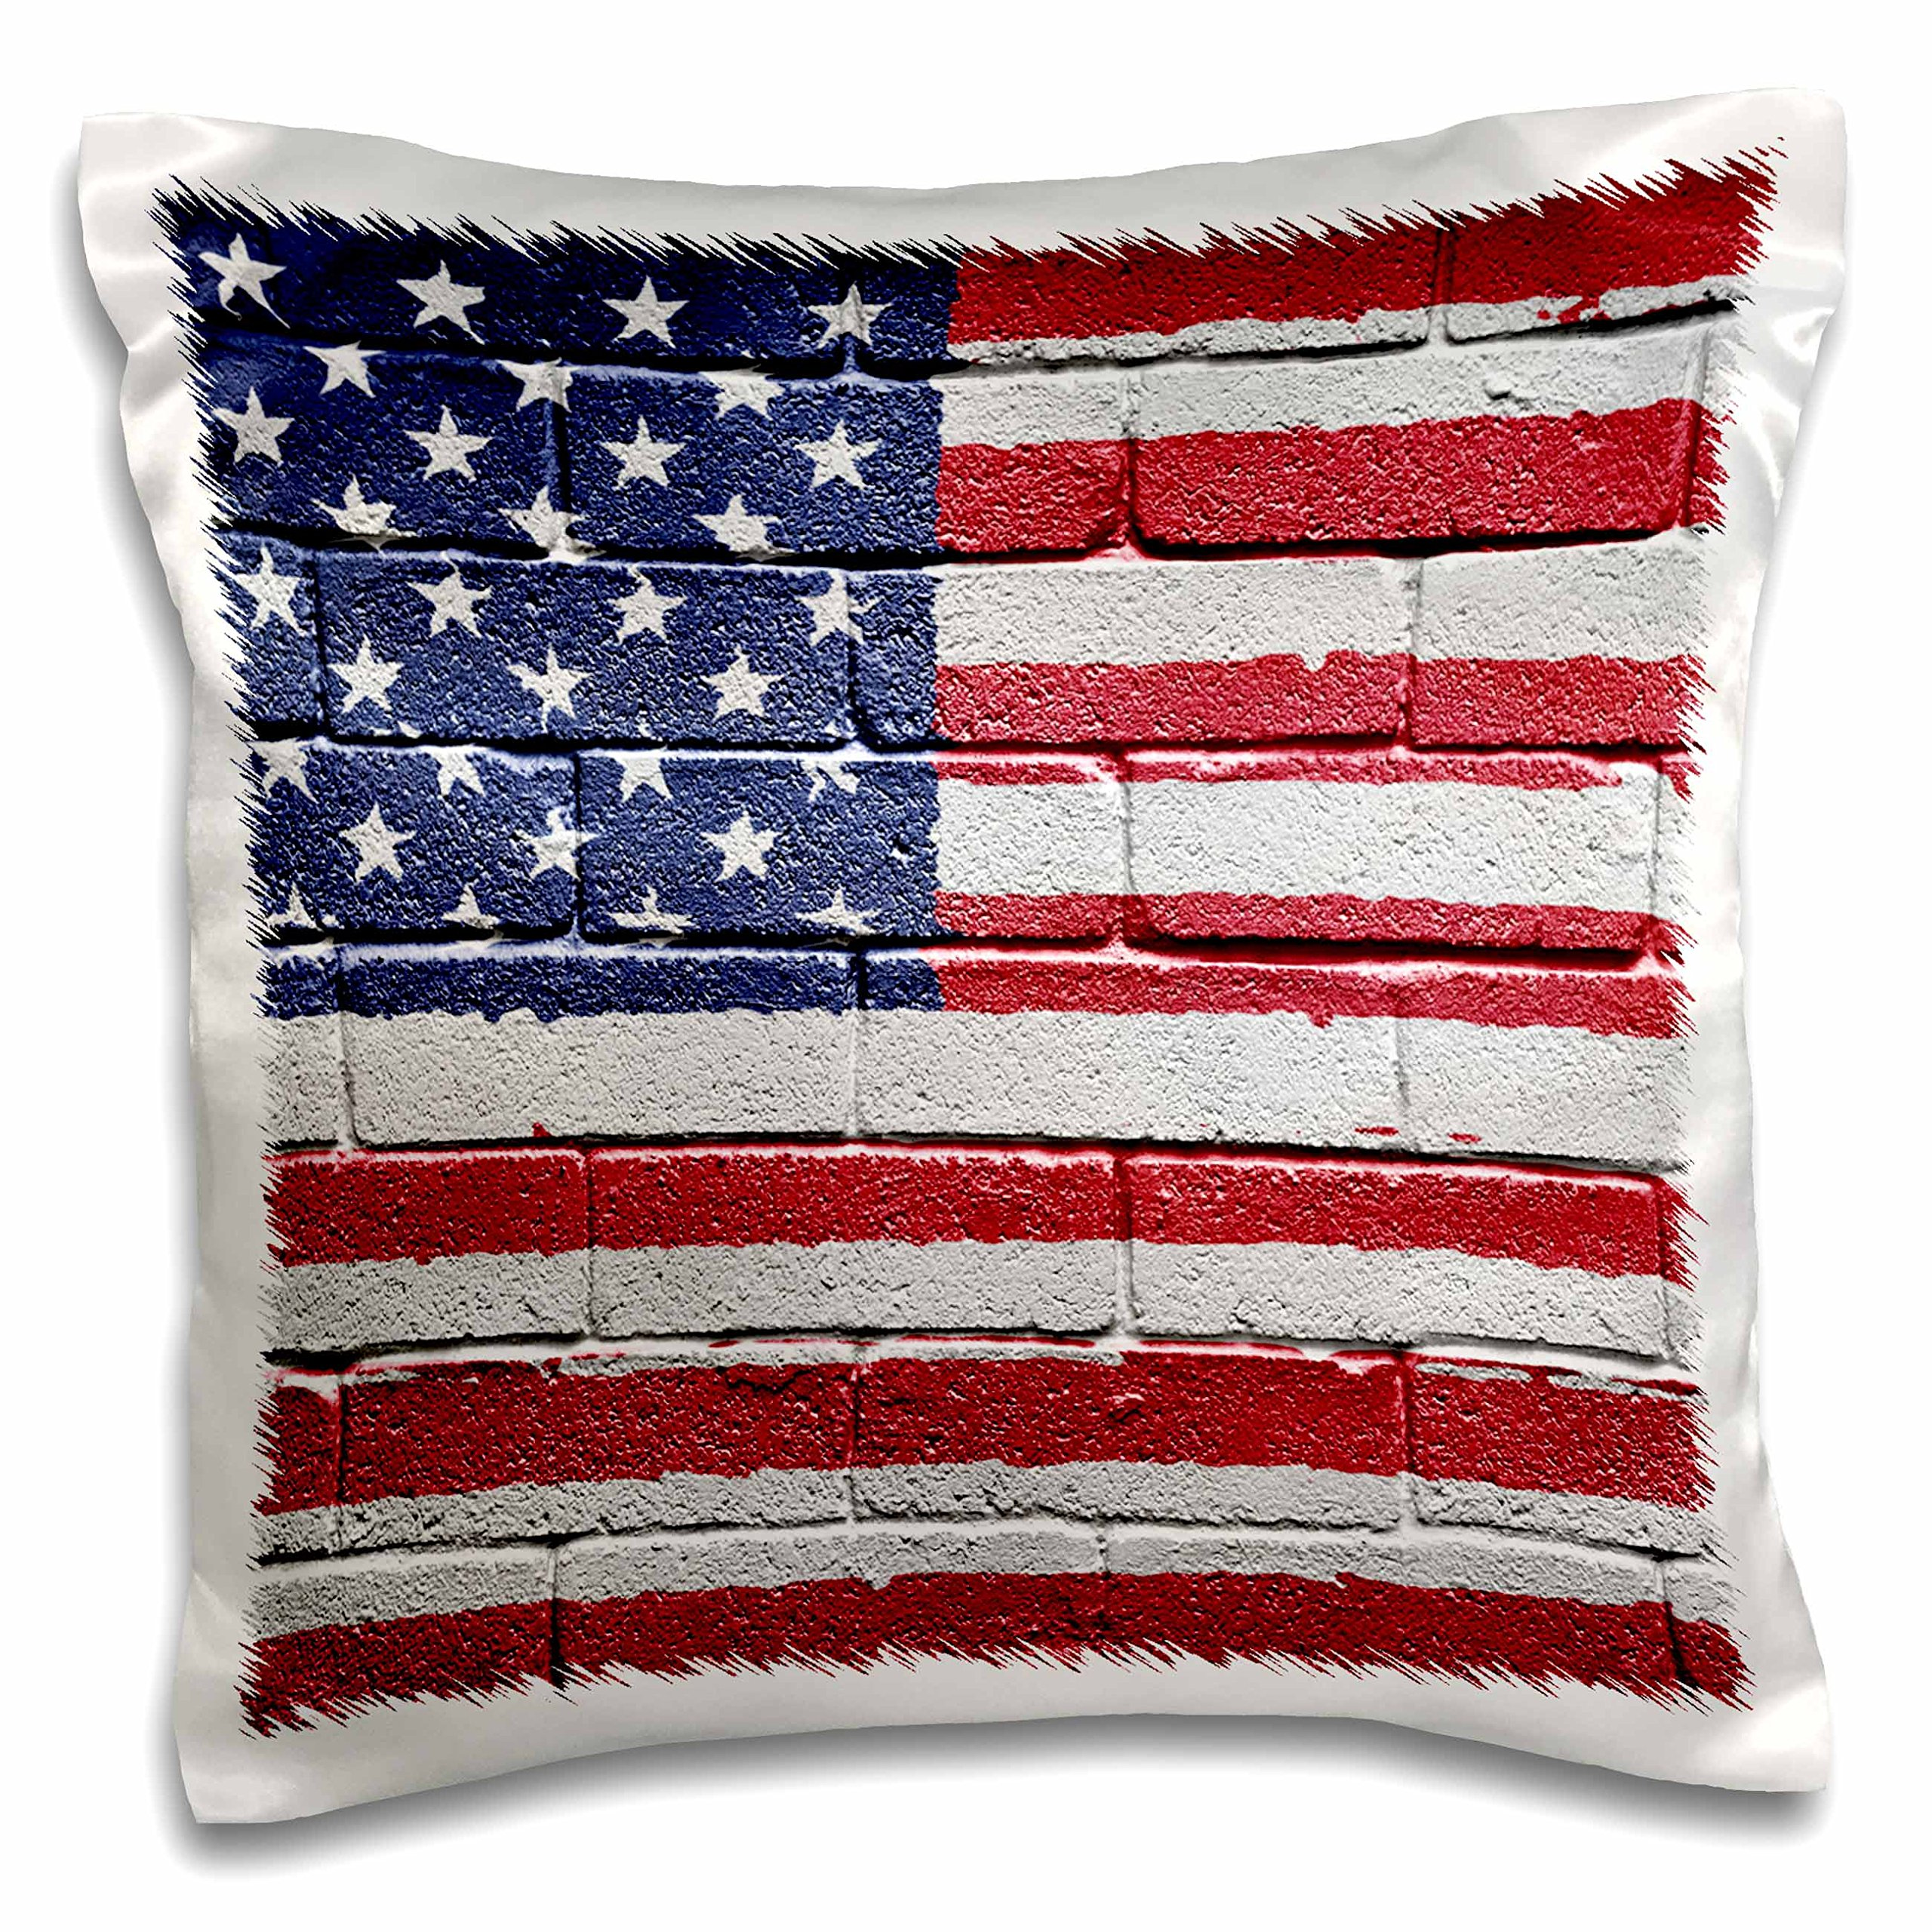 3dRose USA America American Flag on Brick Wall National Country - Pillow Case, 16 by 16-inch (pc_155121_1)